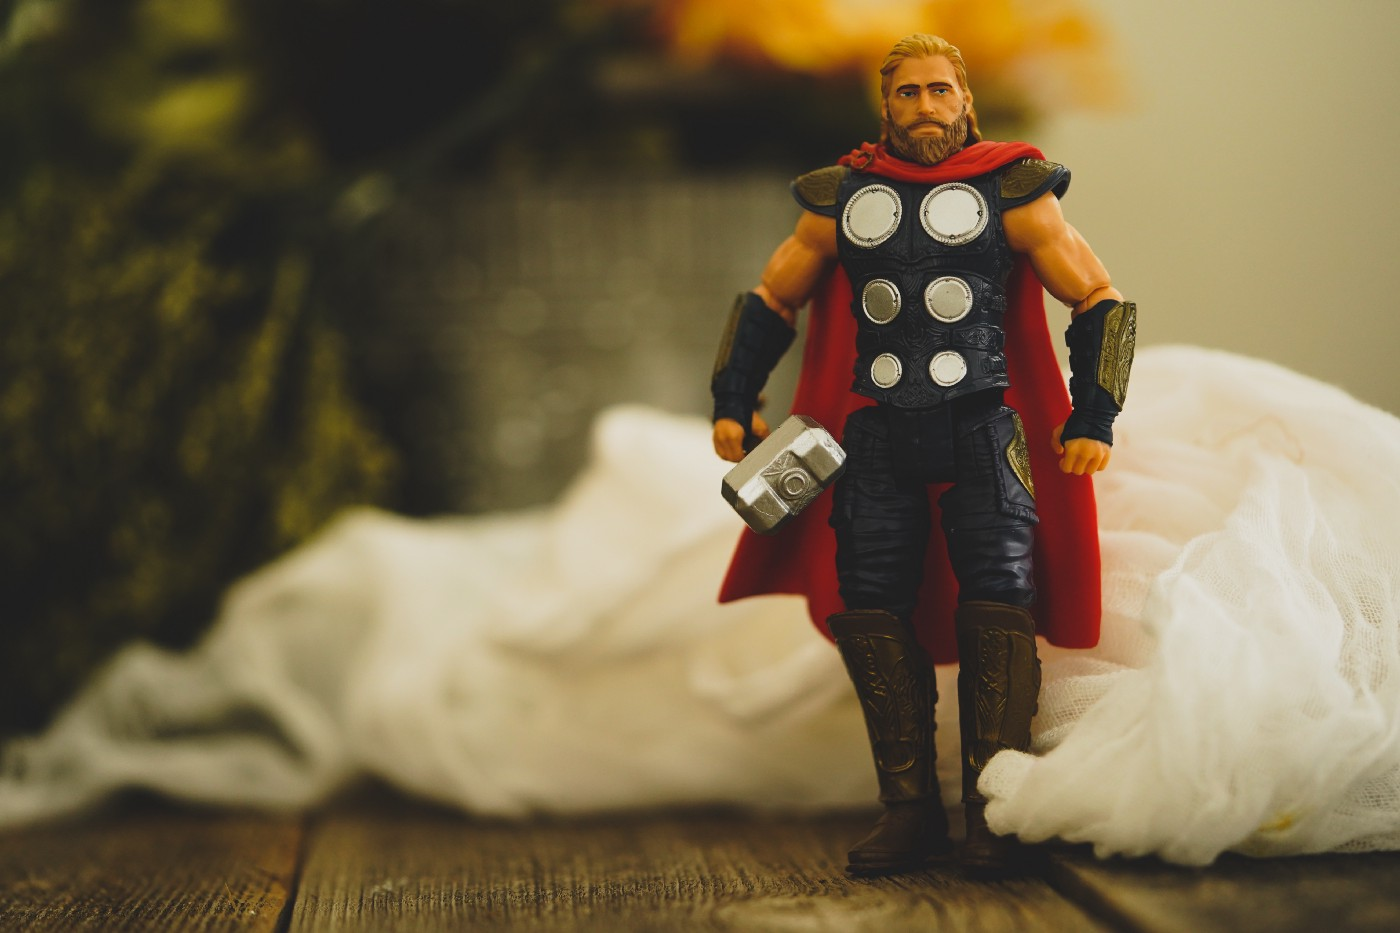 Thor action figure with hammer and cape